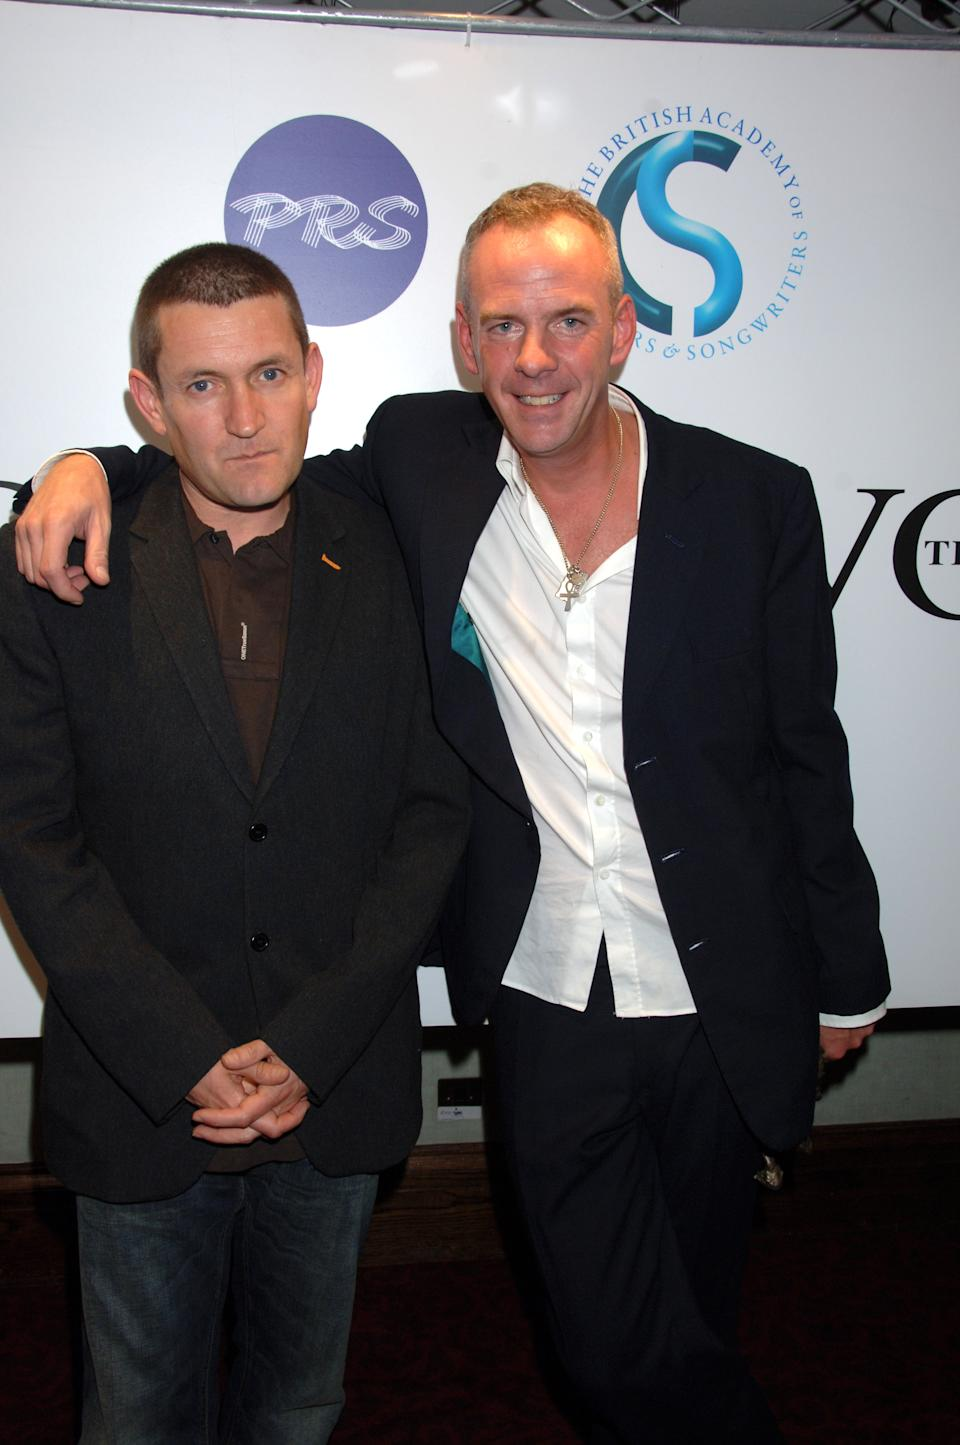 Ivor Novello Awards At The Grosvenor House Hotel, London, Britain - 24 May 2007, Paul Heaton And Norman Cook (Photo by Brian Rasic/Getty Images)